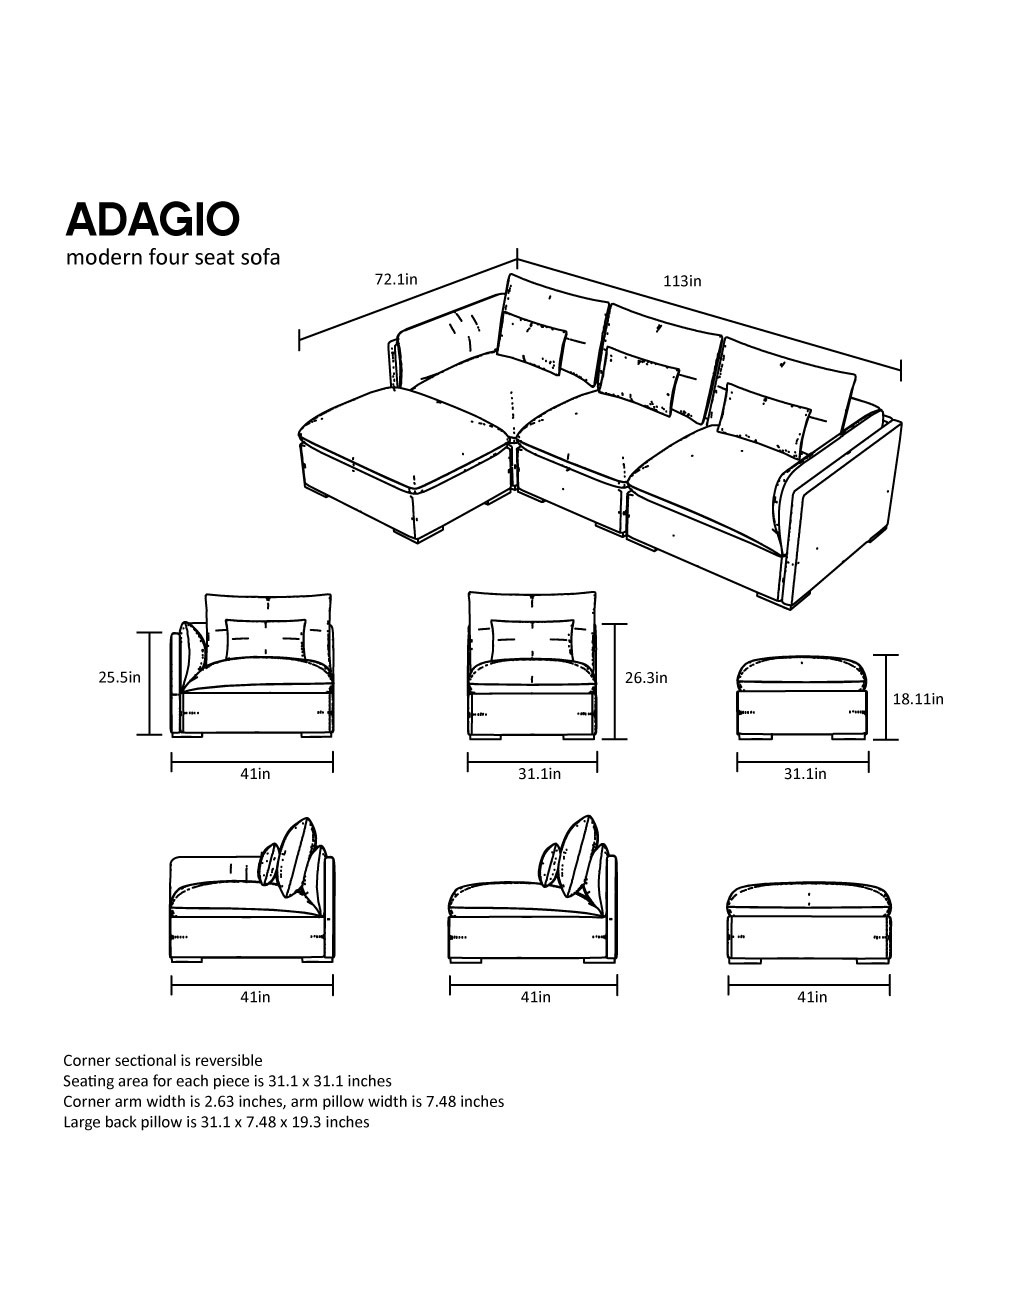 Adagio Luxury Sectional Modular Sofa Set Of 4 Expand Furniture Folding Tables Smarter Wall Beds Space Savers